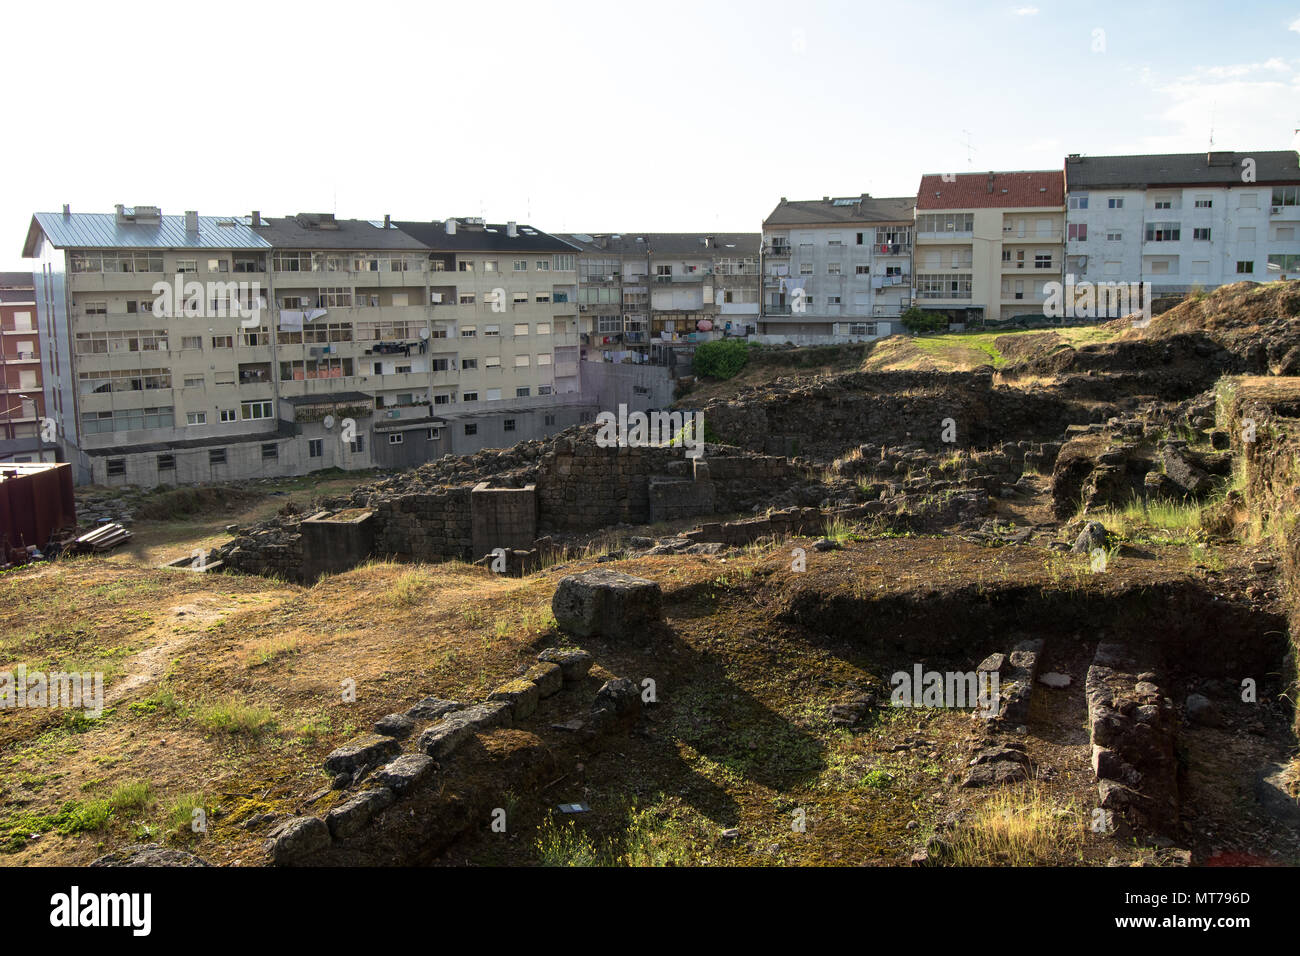 Roman therms in Portugal, city of Braga - Stock Image